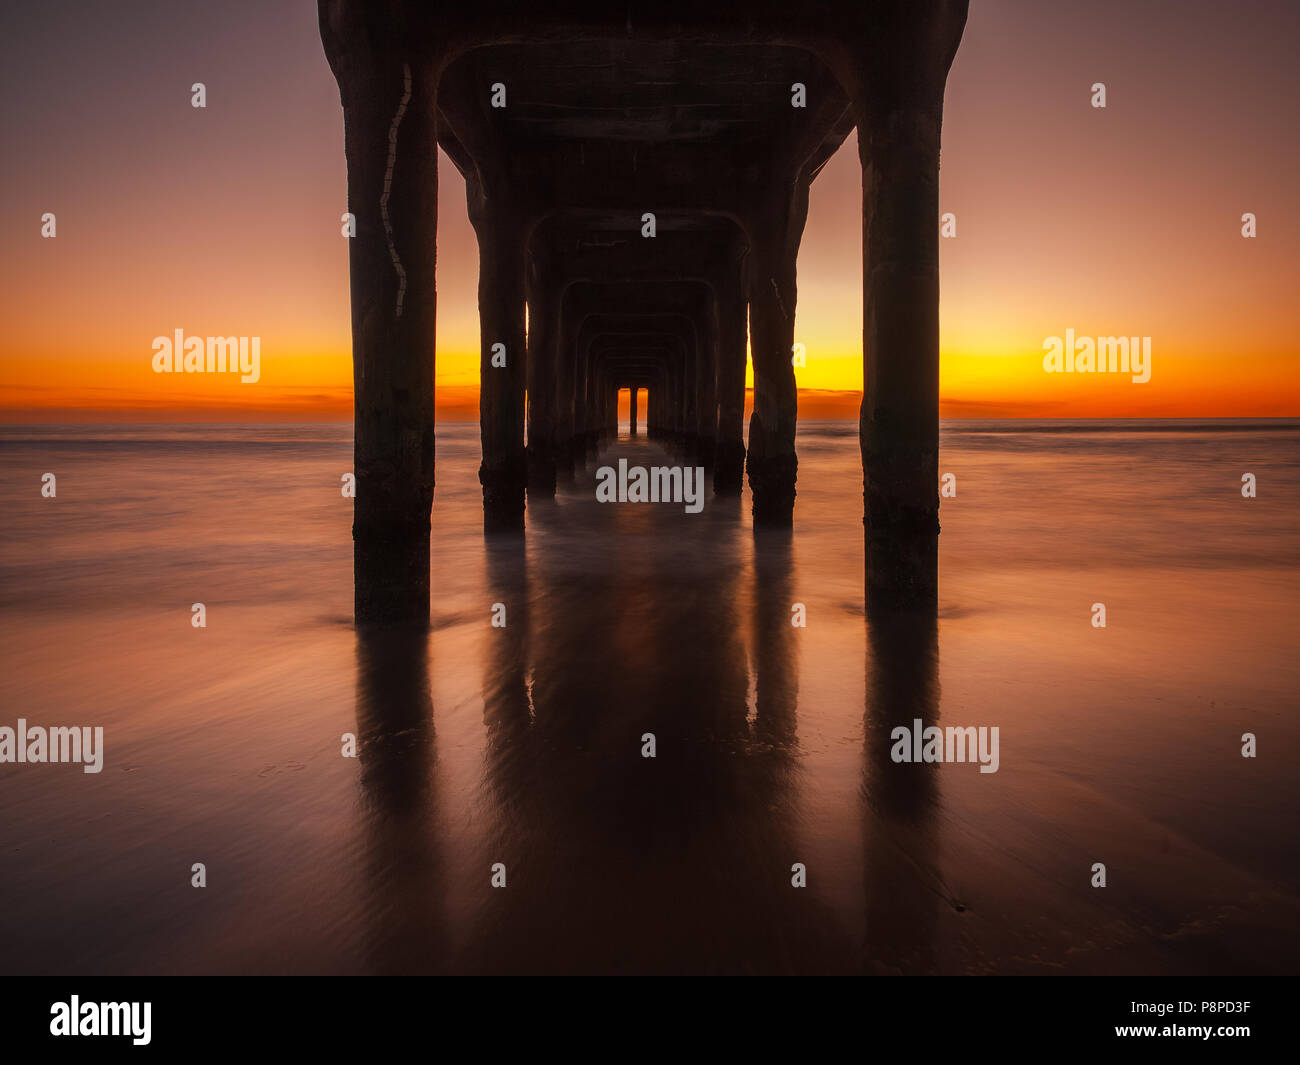 Manhattan Beach Pier at Sunset - Stock Image